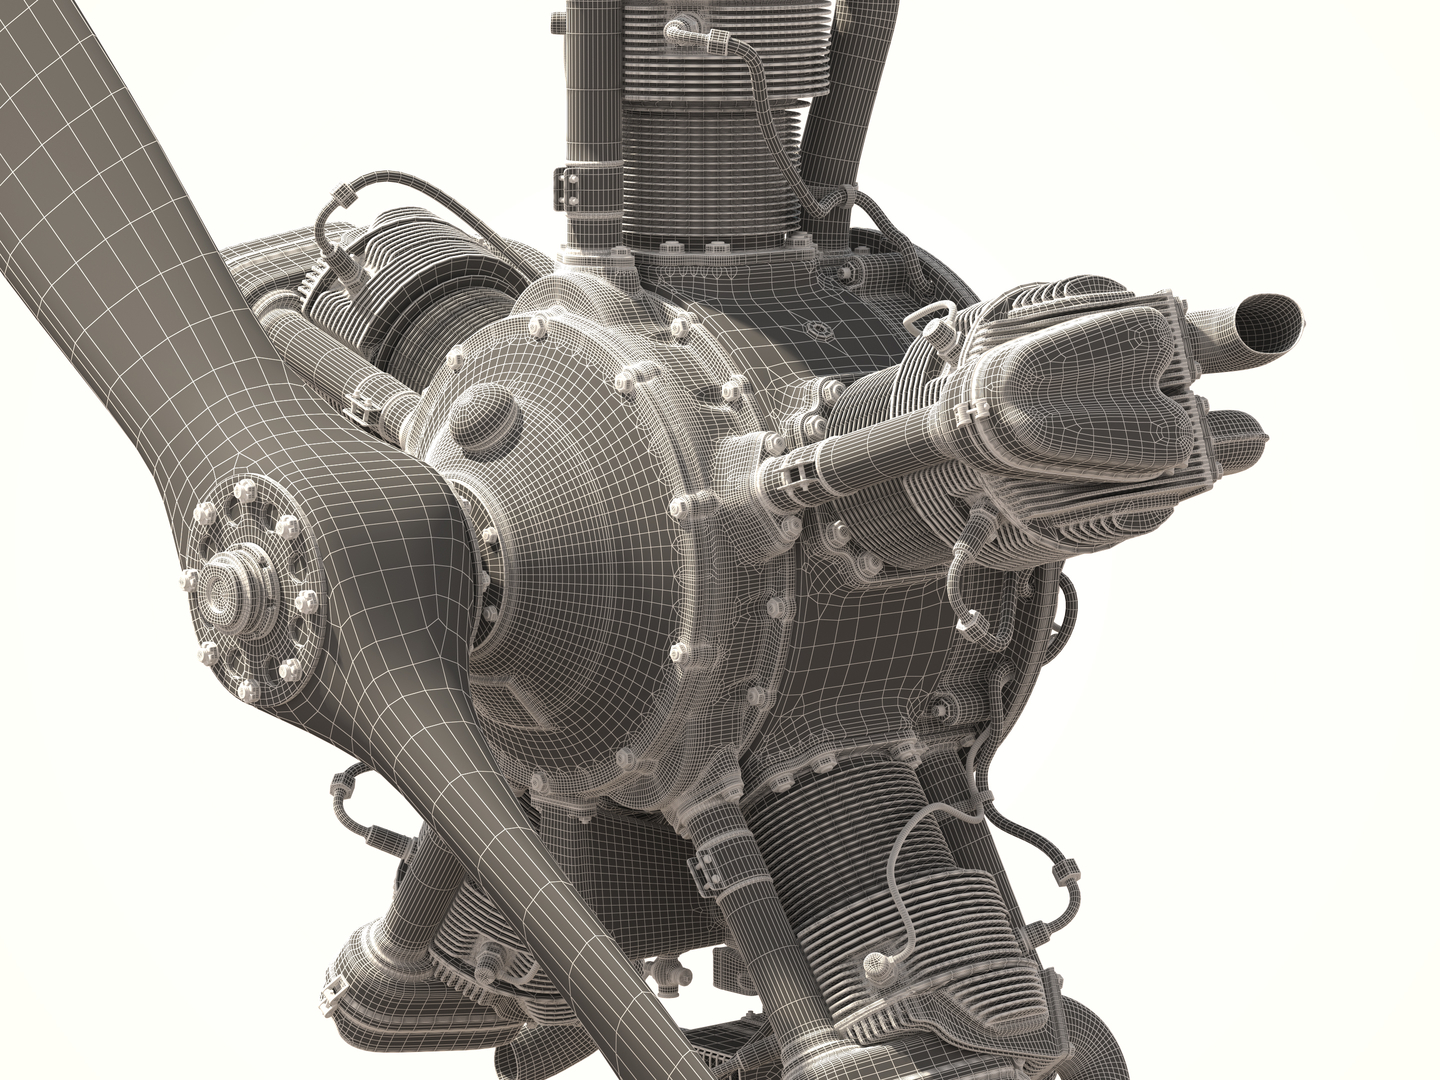 Aircraft engine M-11 3D model in 3d max vray 2.5 image